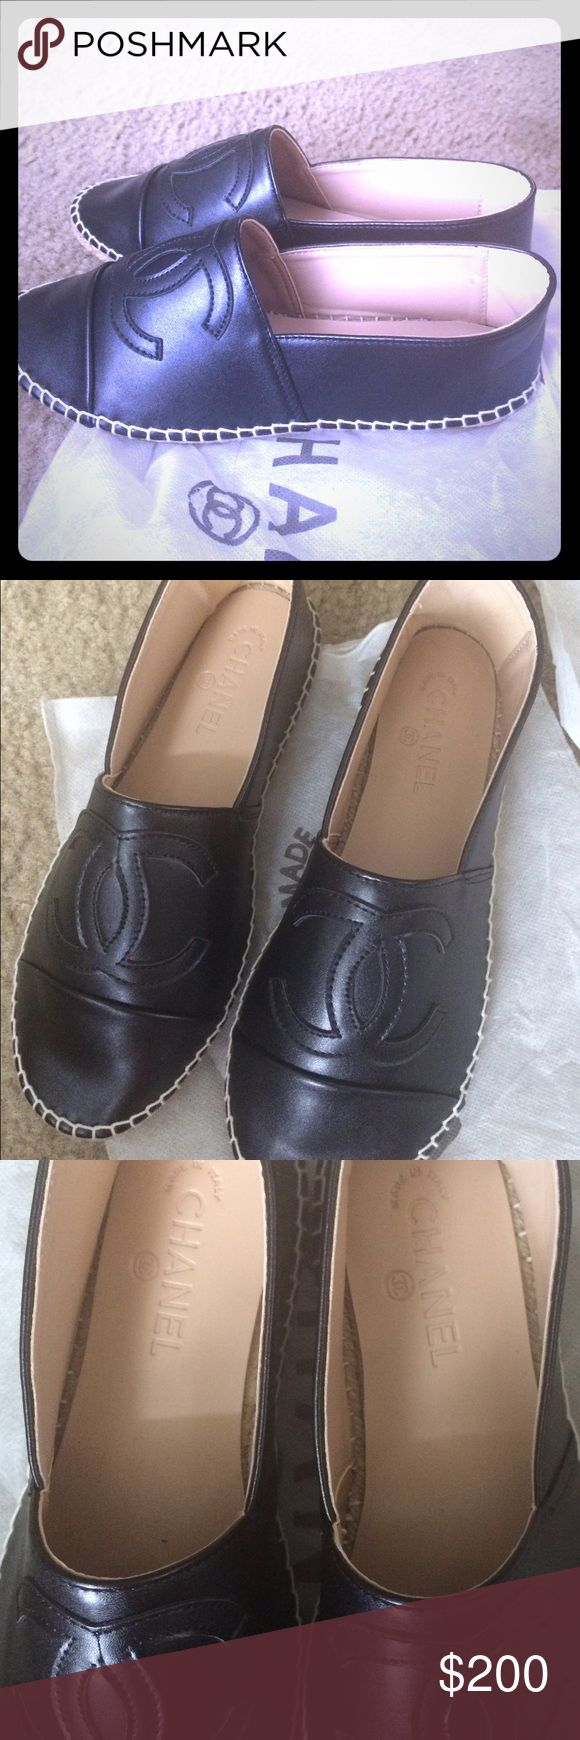 Black eel leather espadrilles Brand spanking new black eel leather Chanel espadrilles,never worn as it runs small,my daughter is 7.5 but they fit 6.5 unfortunately. In dust bags. No box due to relocation she ordered online and didn't try on for size. Chanel Shoes Espadrilles